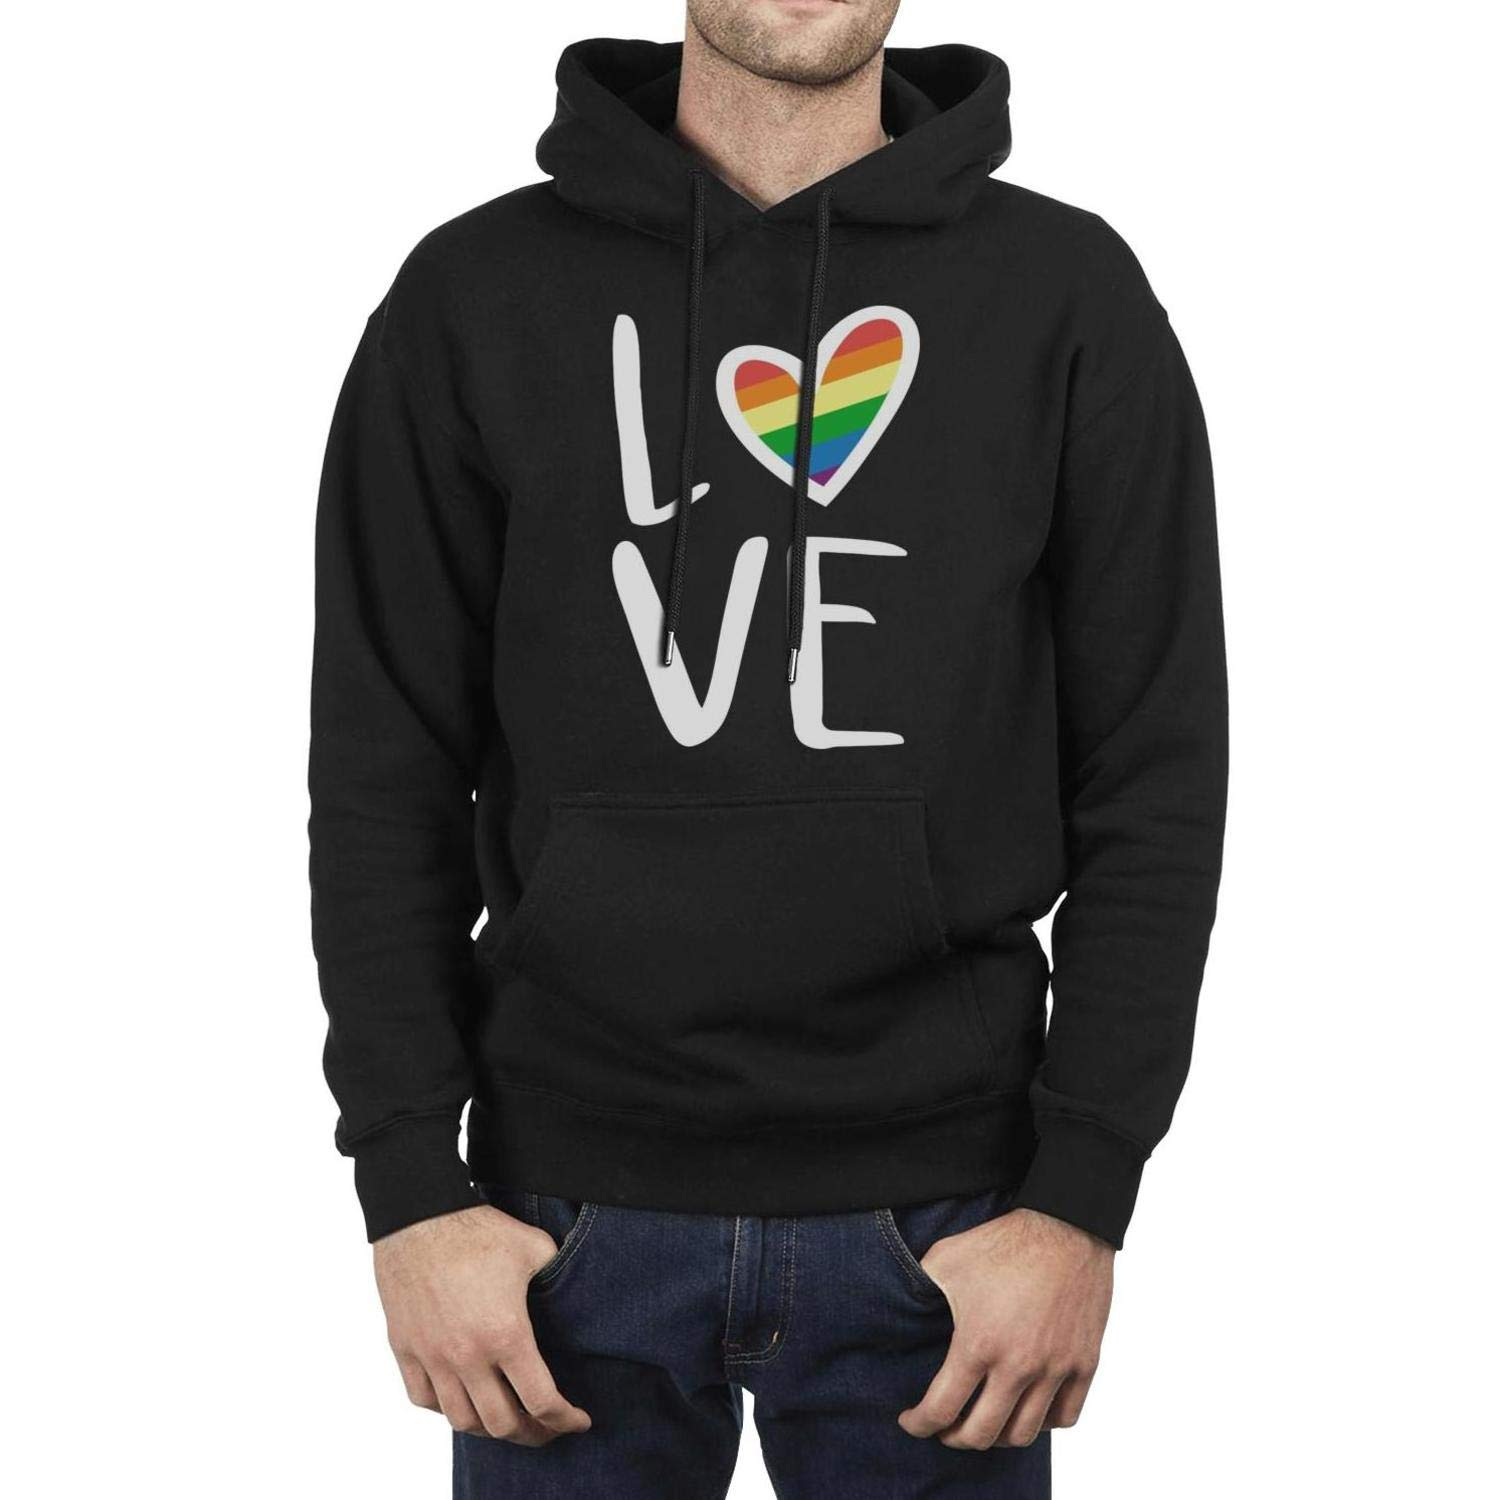 I Love You Gay Pride Gesture Male Black Hoodie Sweatshirt Fleece Printed Long Sleeve